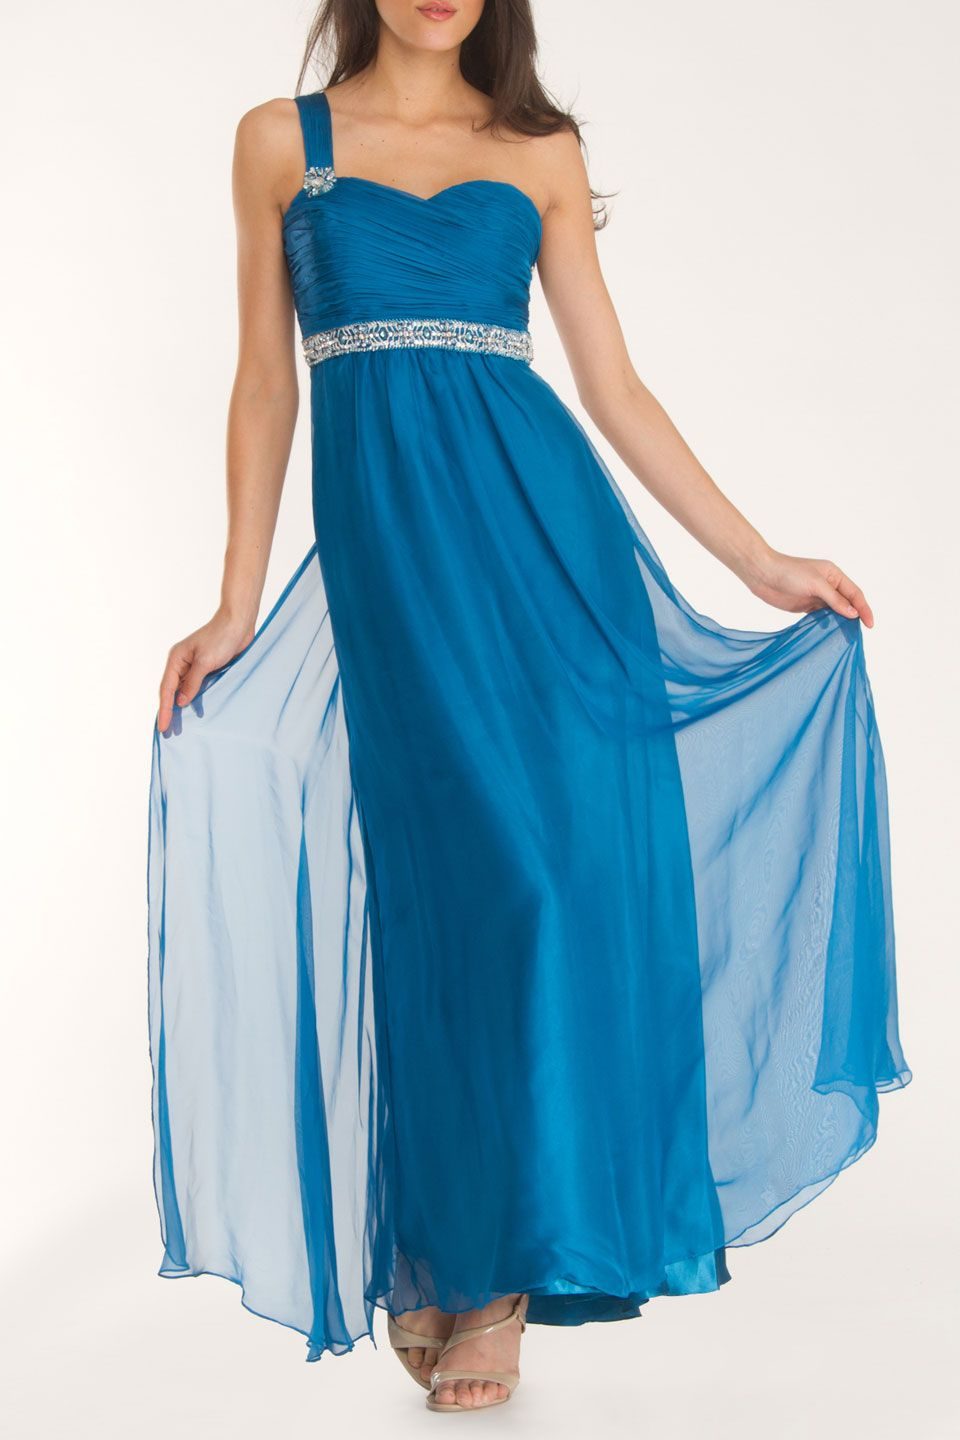 Dave & Johnny Olivia long toga dress in teal | Togas/ Roman ...